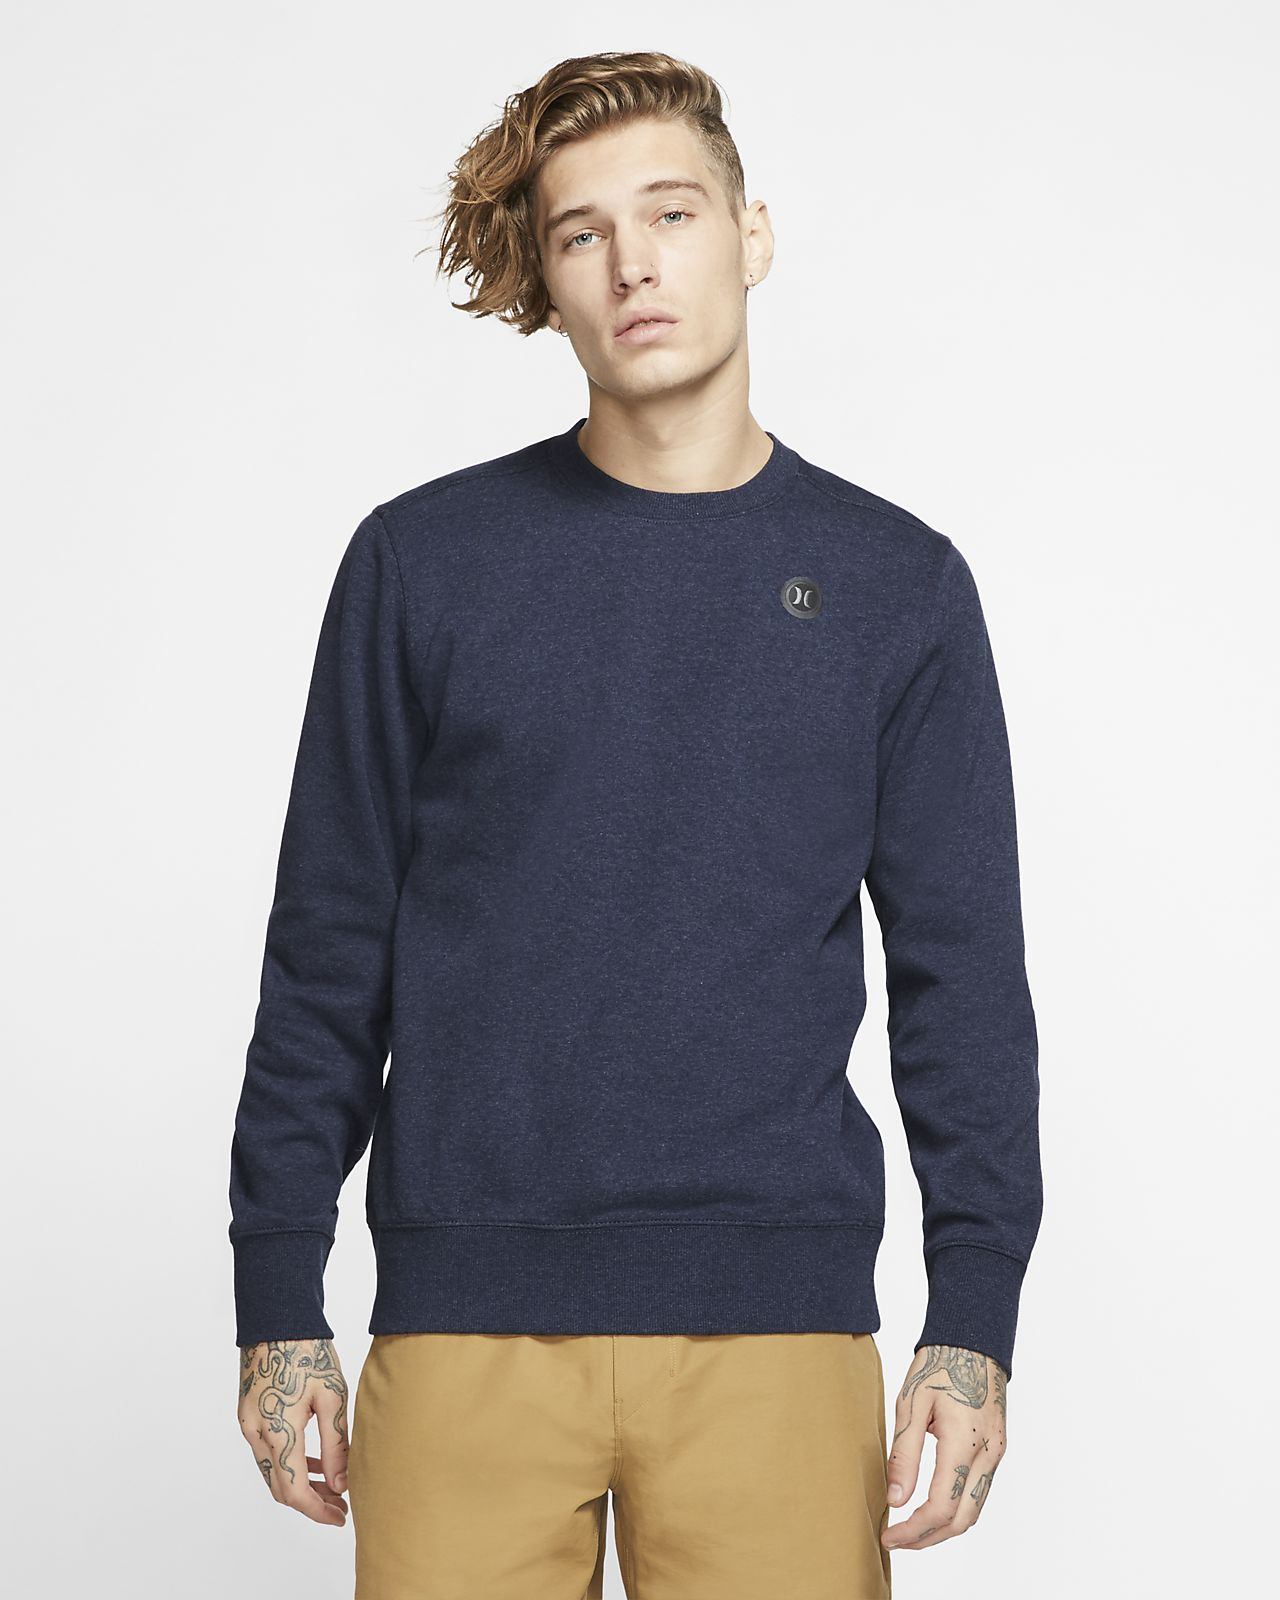 Hurley Therma Protect Men's Fleece Crew